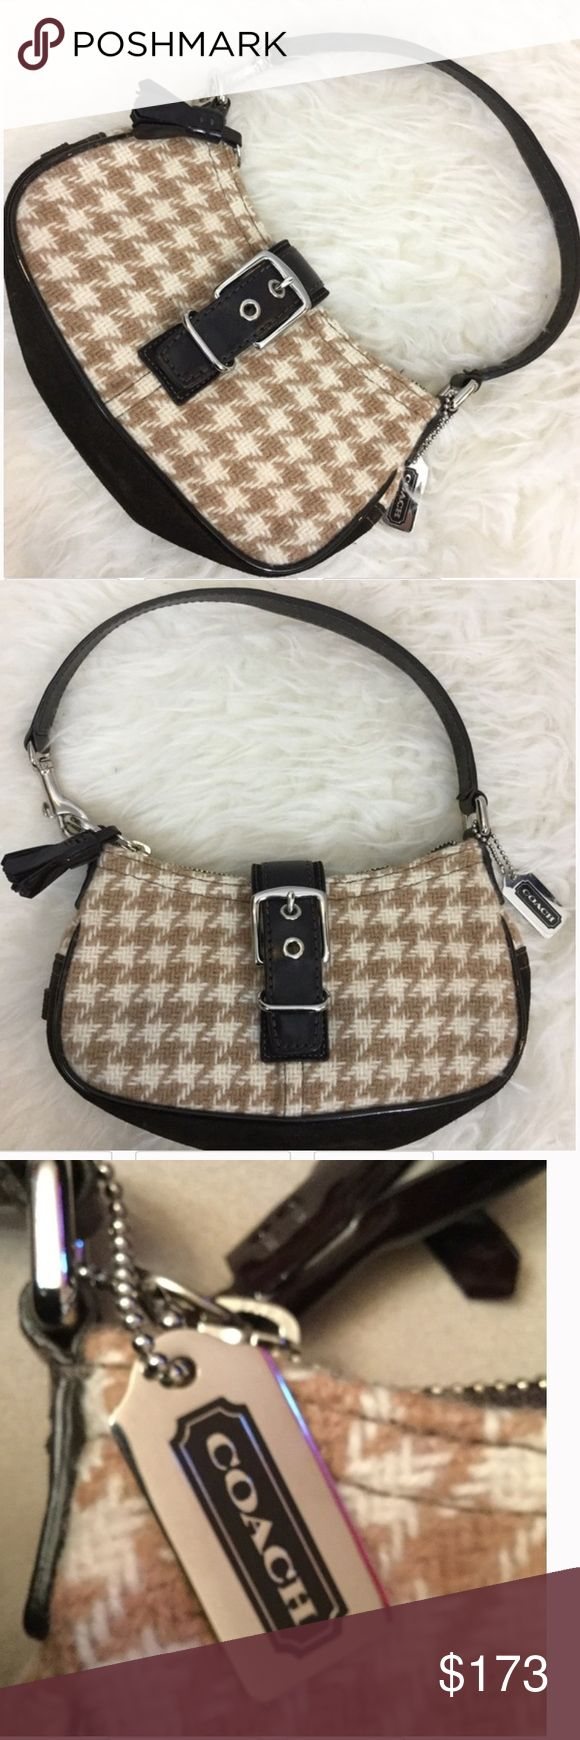 """COACH Small Tan Cream Shoulder Bag Handbag Purse Stunning Coach cream, tan and brown houndstooth purse. Suede and leather and a magnetic purse make this a fun purse for a night on the town. Approximate measurements: 9"""" long by 12"""" top of strap to base. Very nice pre-loved condition. Love this mini bag! Coach Bags Shoulder Bags"""